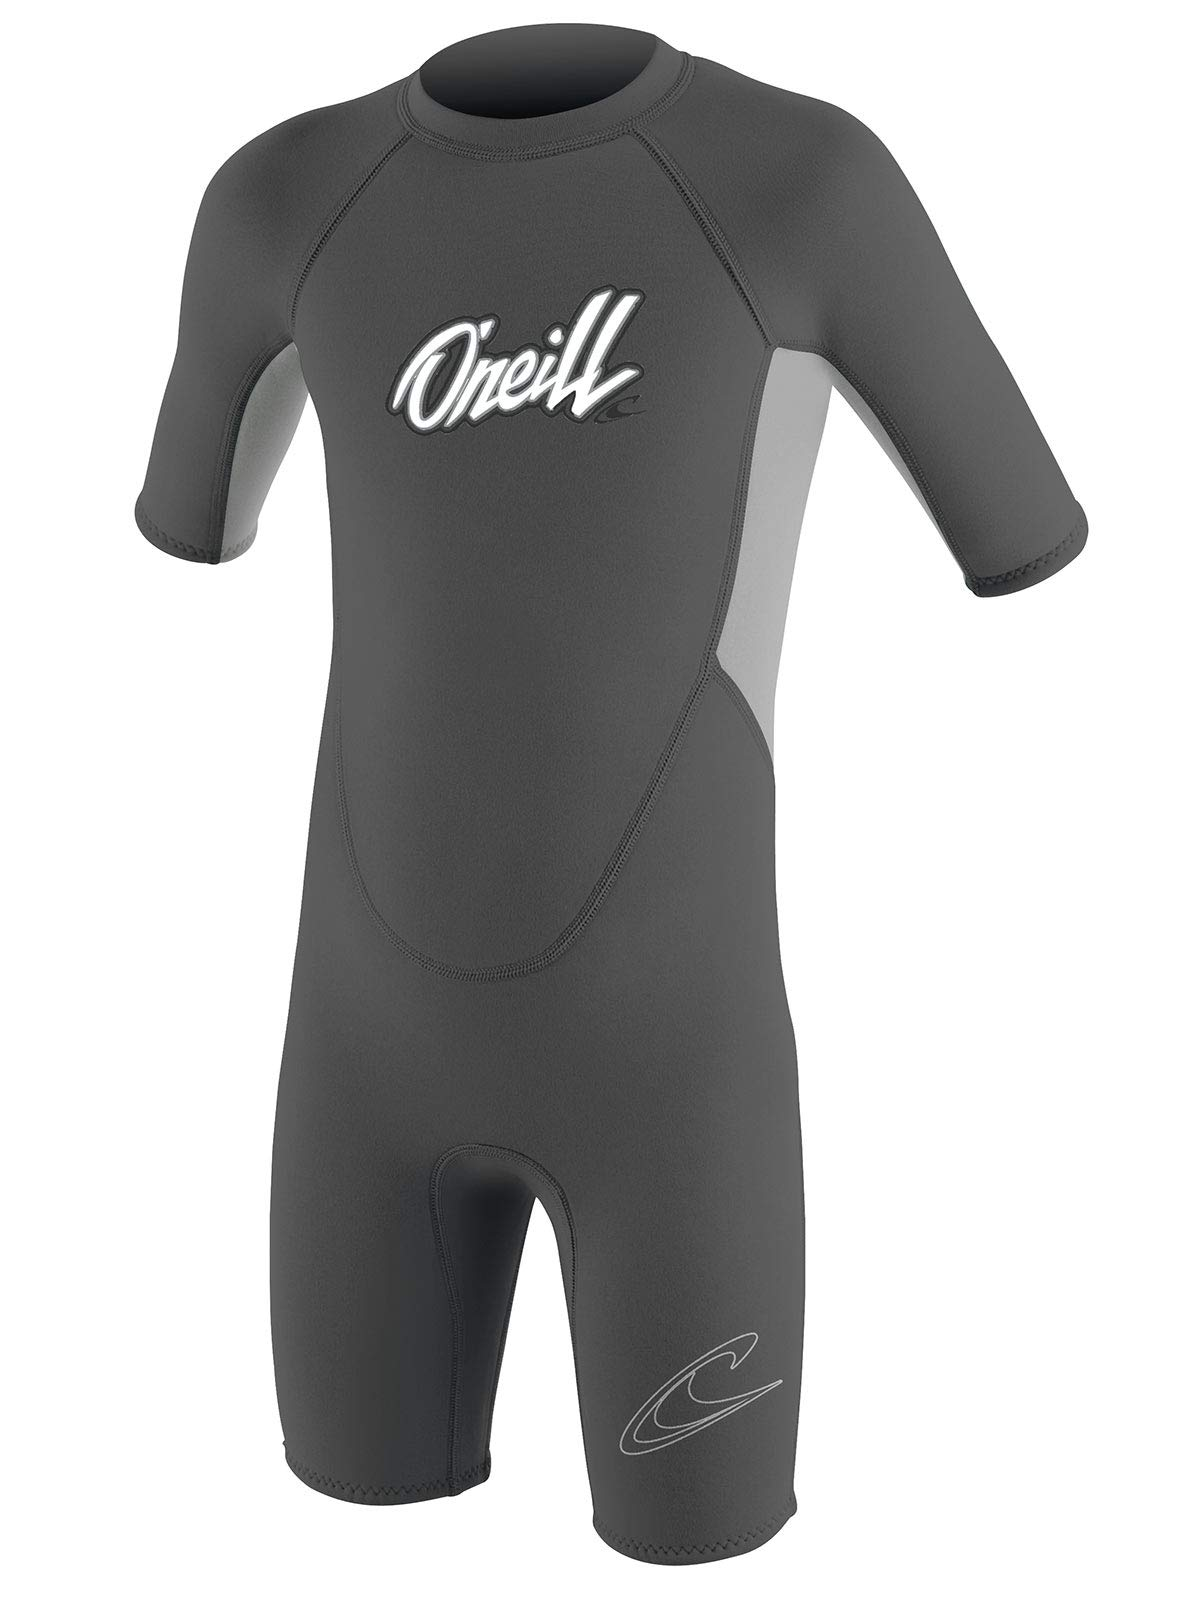 O'Neill Toddler & Little Kids Neoprene Shorty Wetsuit for Swim Classes (Graphite/Cool Grey (5127B), 6) by O'Neill Wetsuits